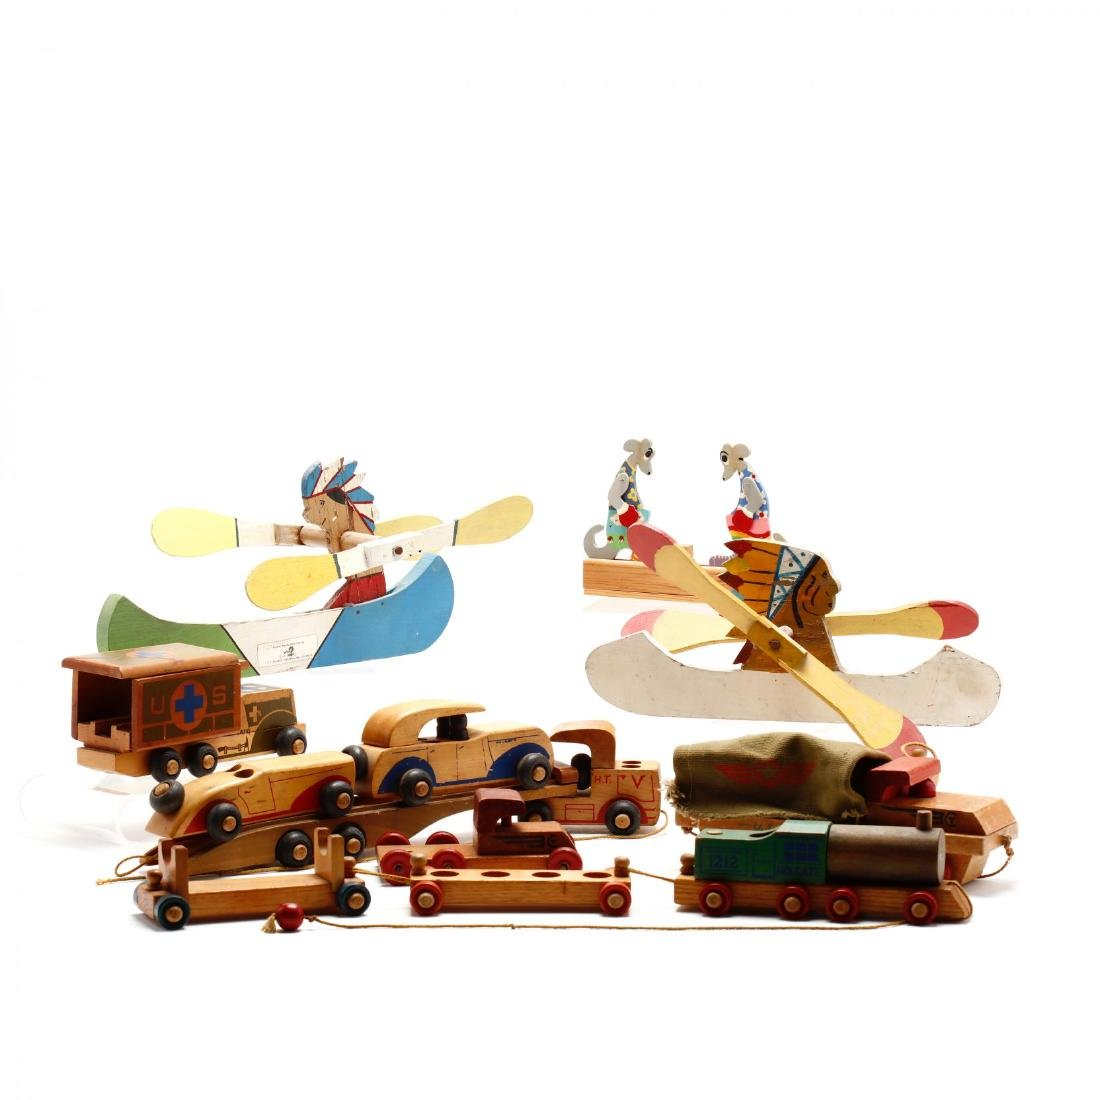 A Group of Vintage Wooden Toys - 8